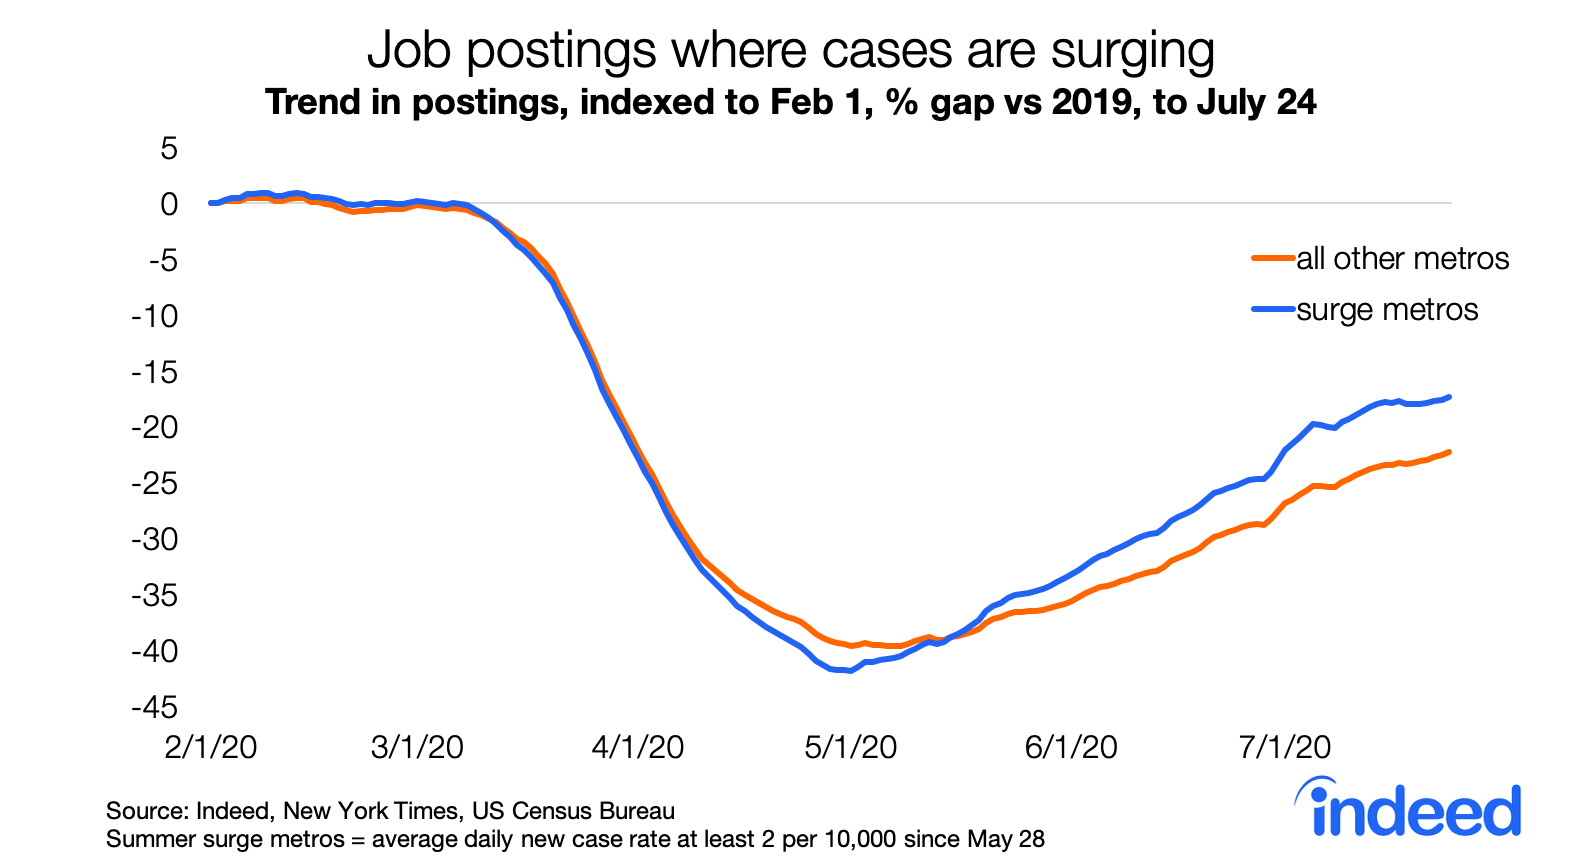 Job postings where cases are surging